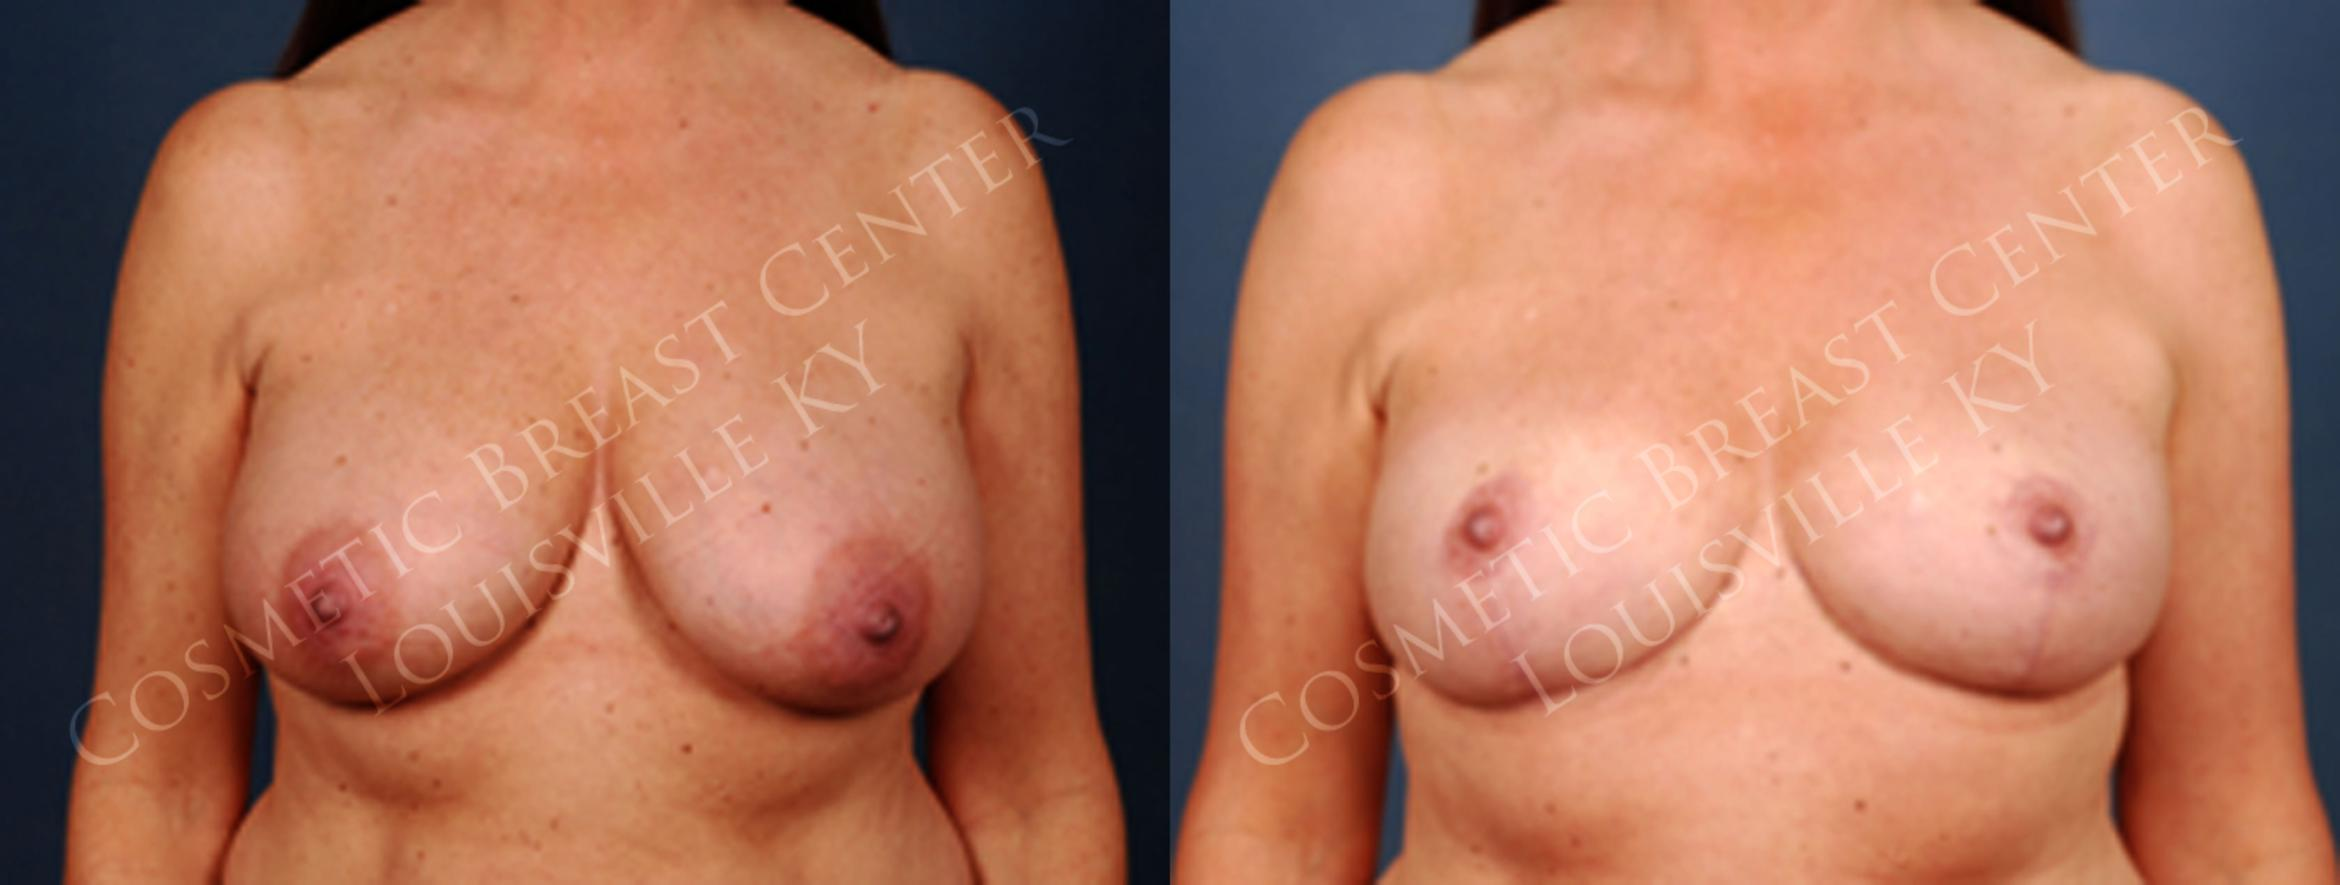 Reduction Case 223 Before & After View #1 | Louisville, KY | CaloAesthetics® Plastic Surgery Center